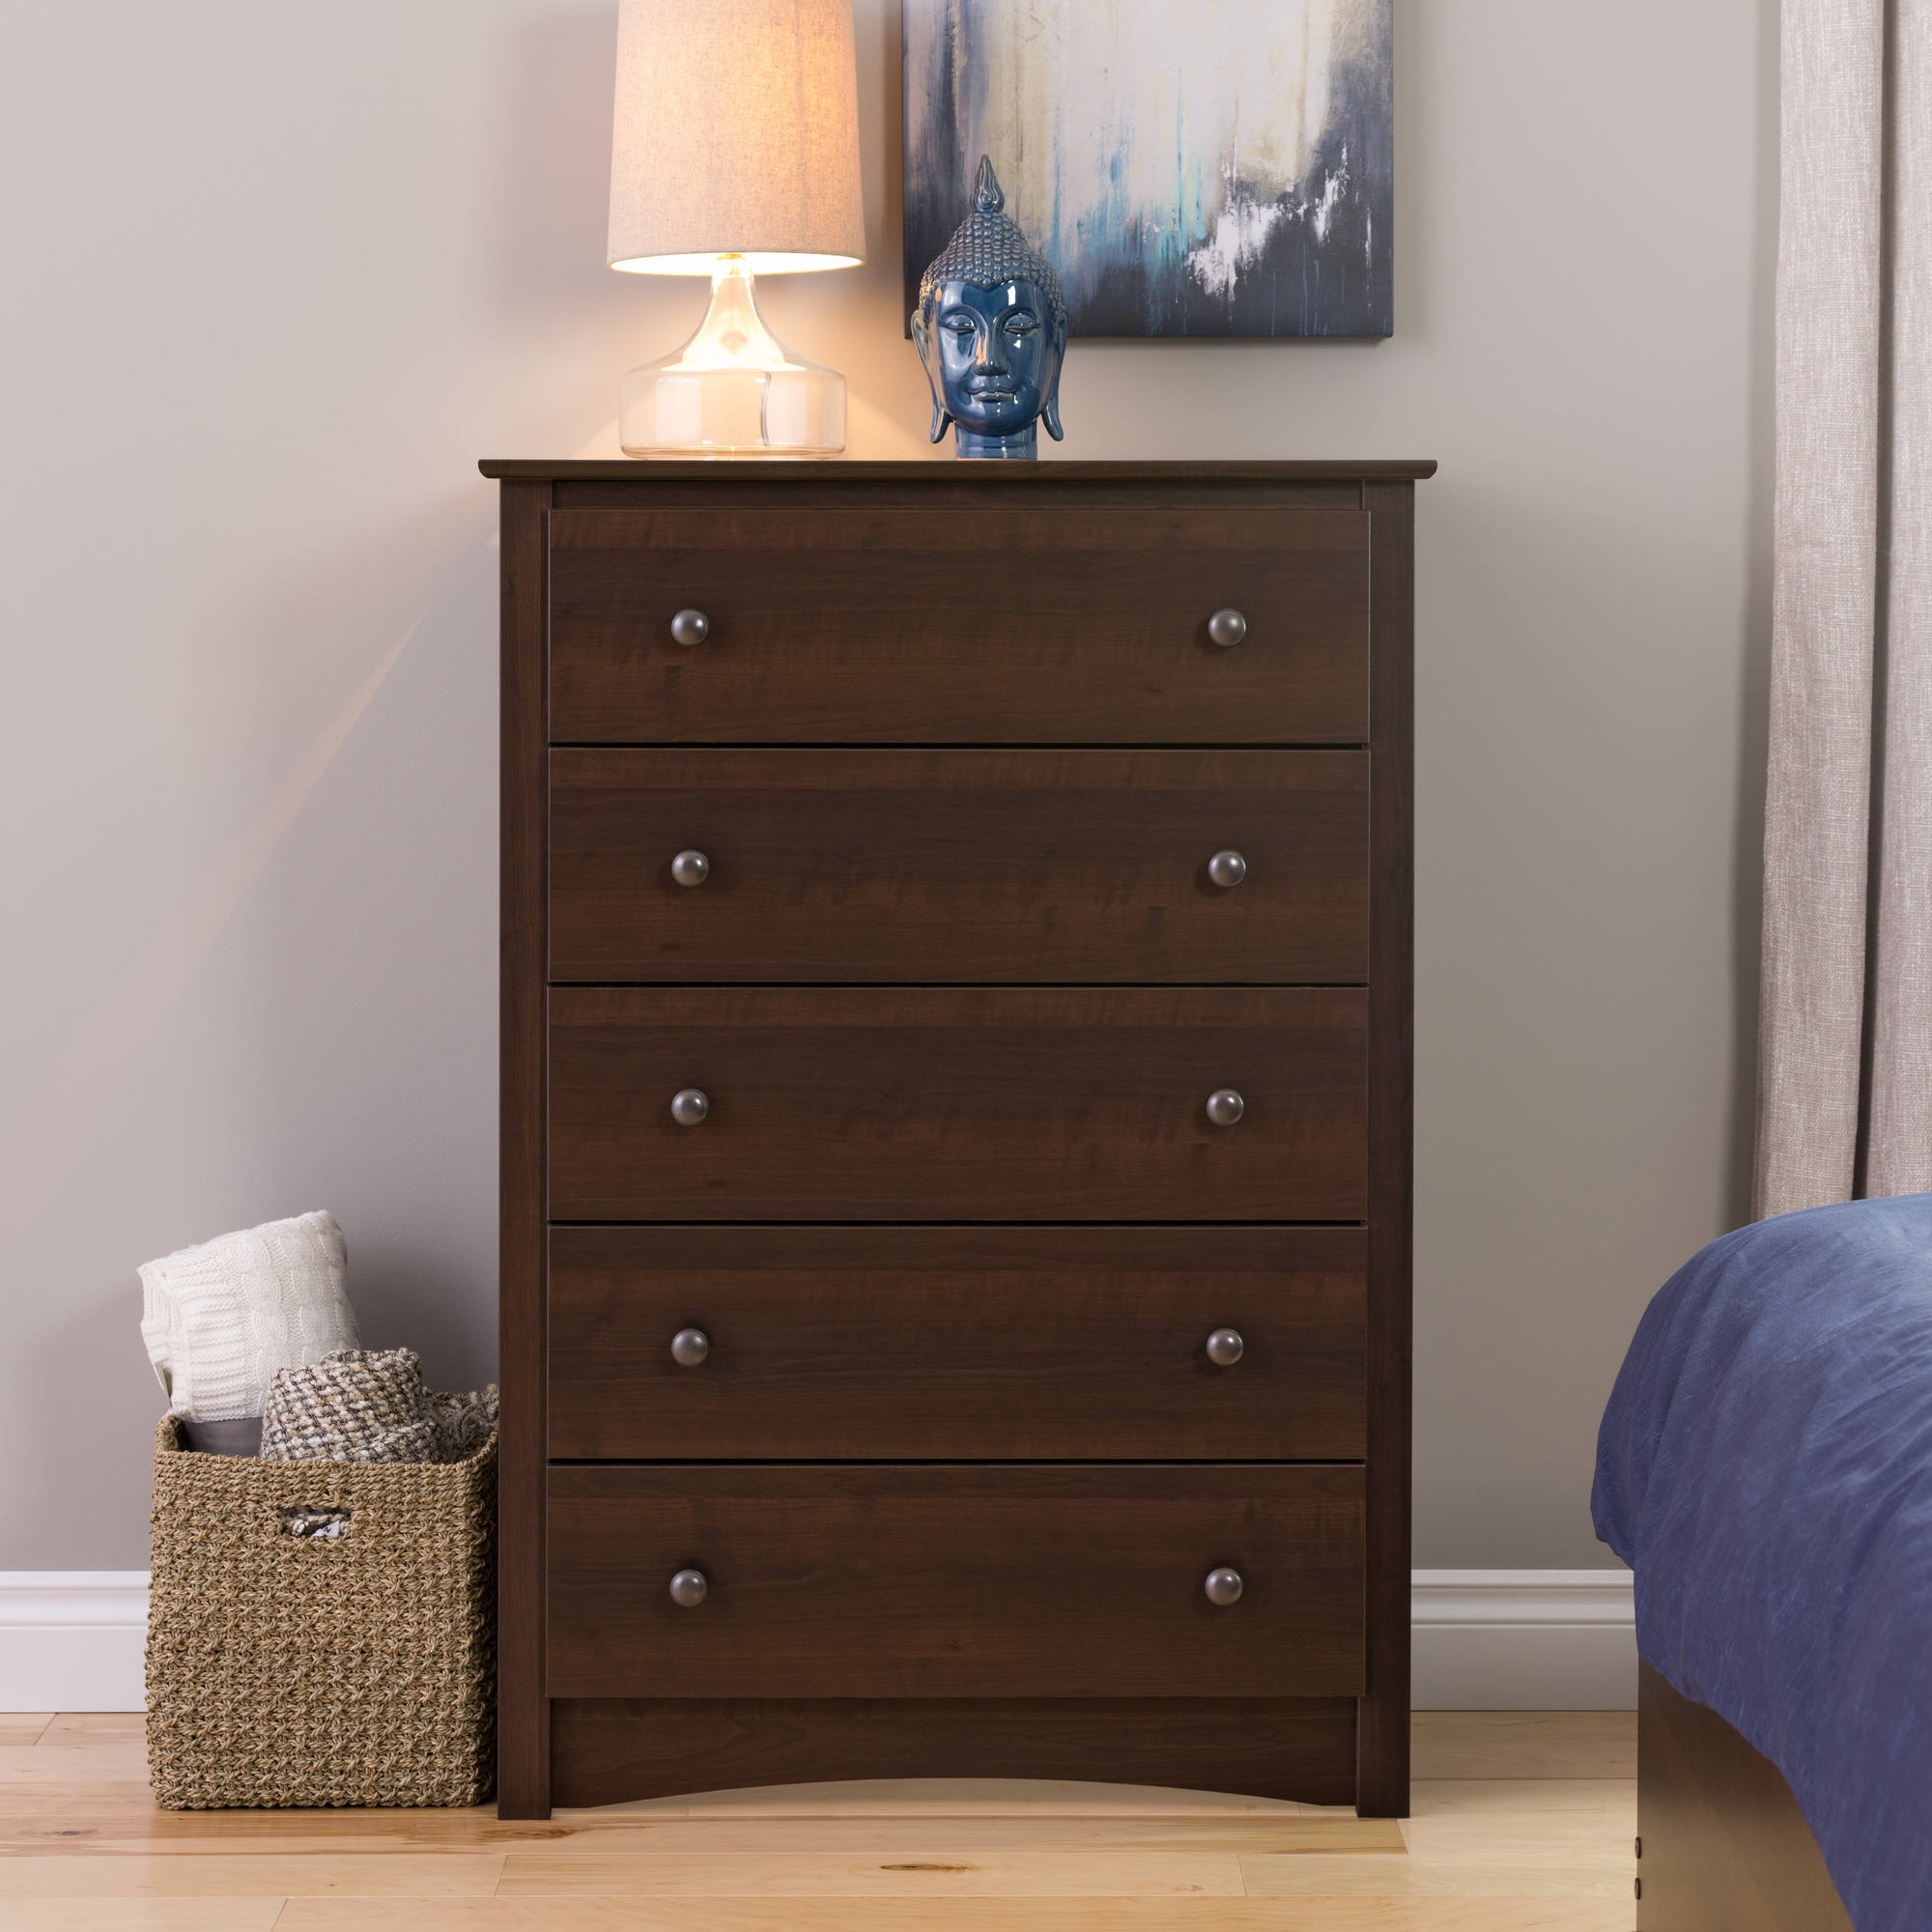 PrePac Edenvale 5-Drawer Dresser, Espresso (Box 1 of 2) by Prepac